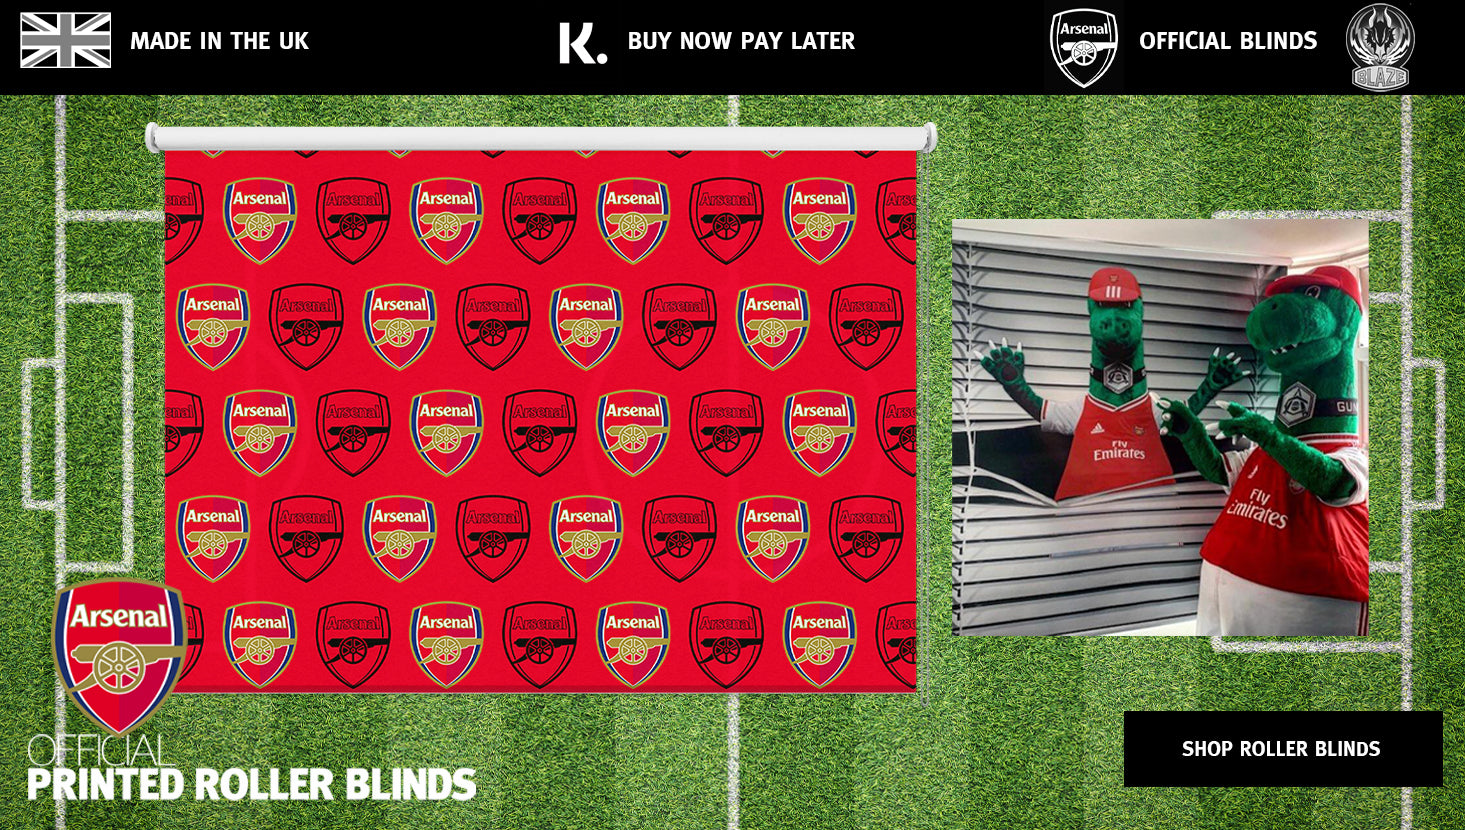 Printed photo roller blinds for your home or office.